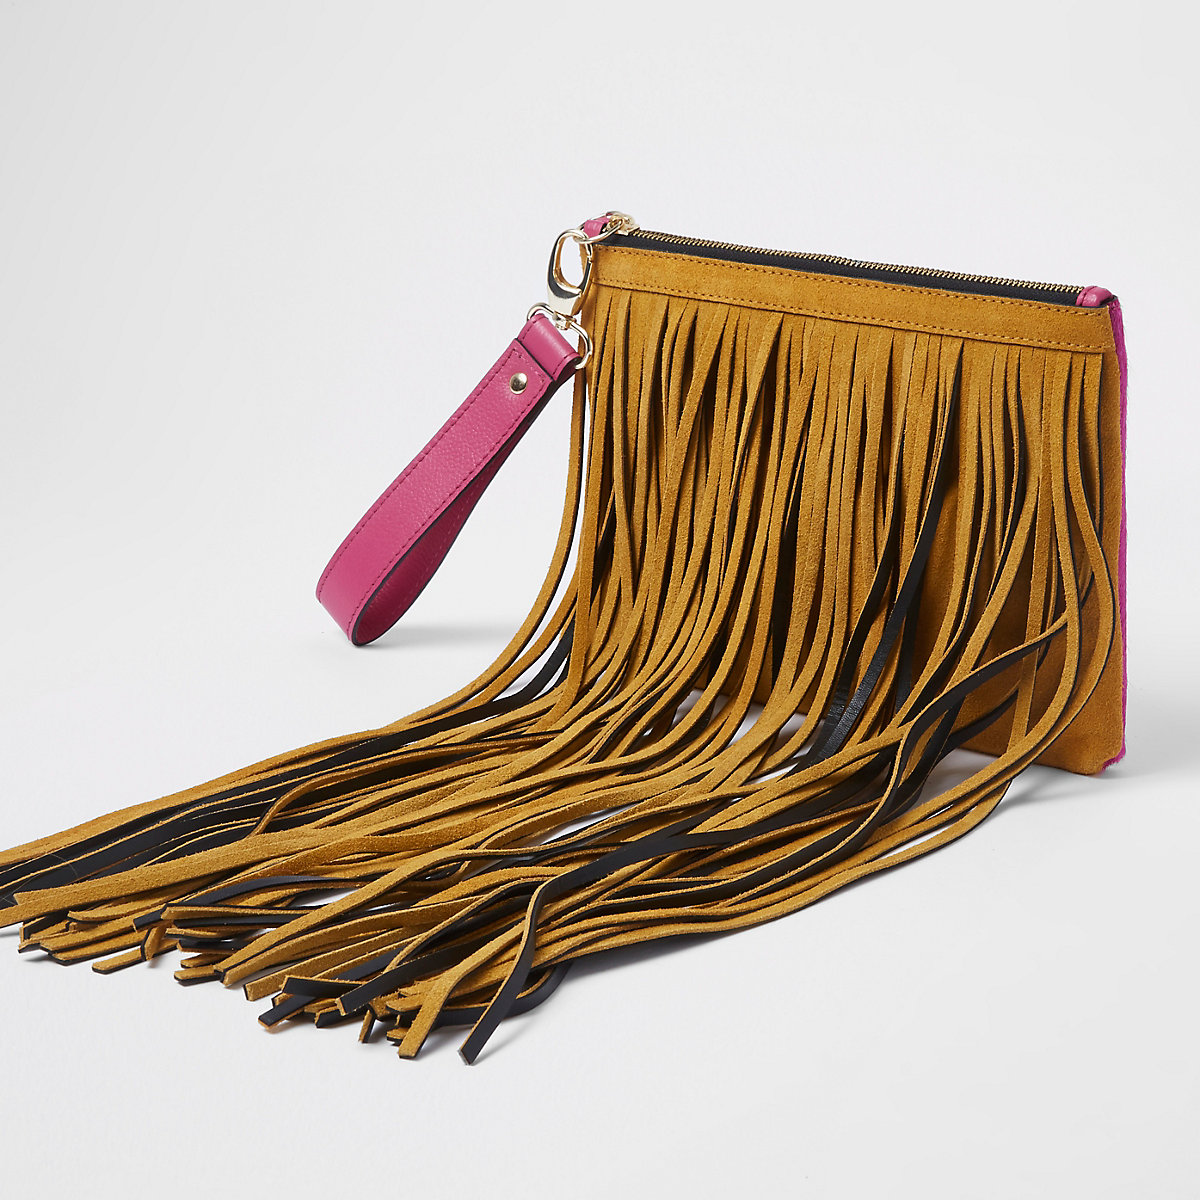 Tan and pink suede fringe clutch bag